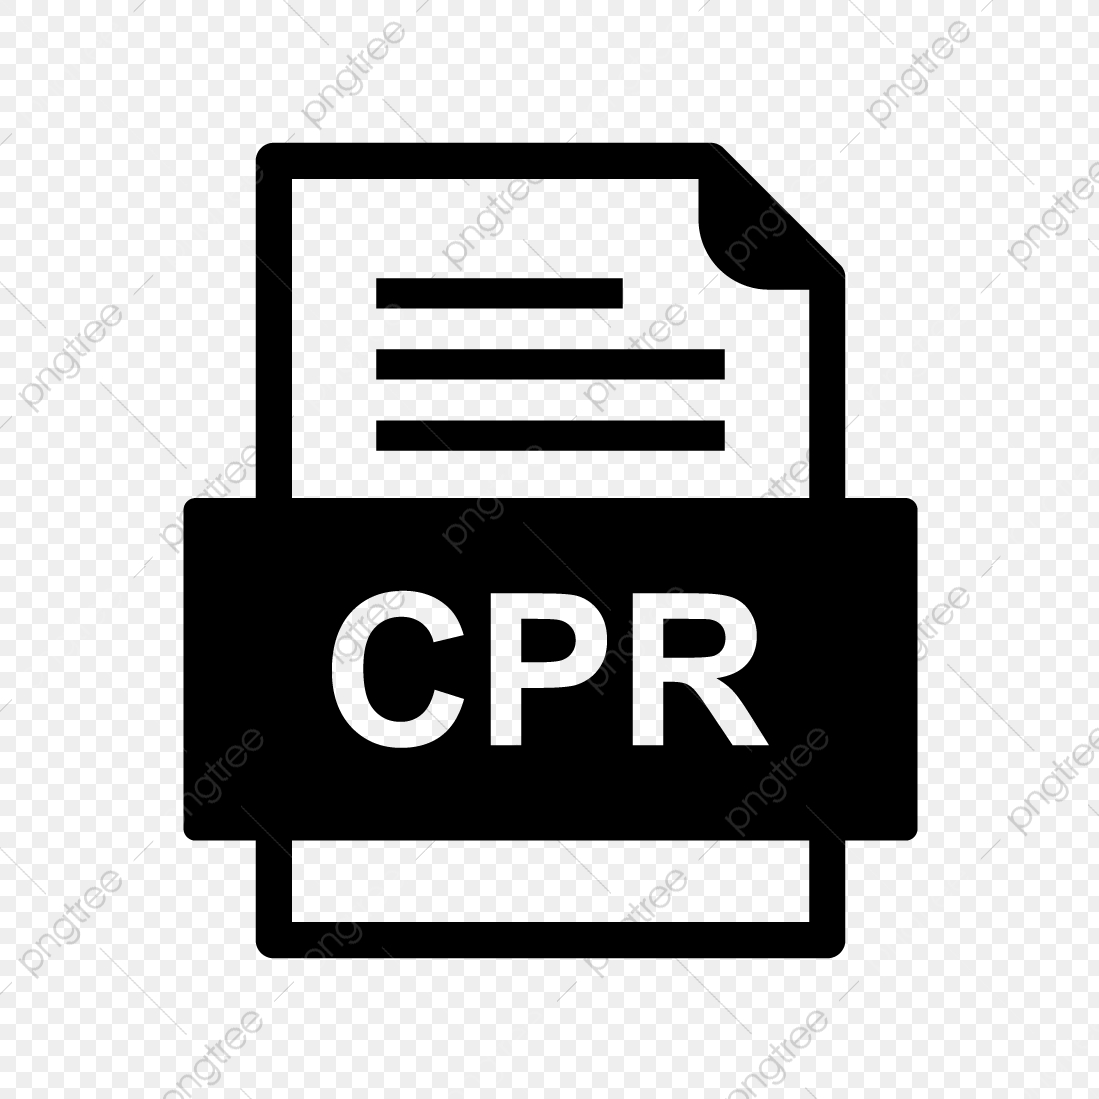 Cpr File Document Icon, Cpr, Document, File PNG and Vector with.